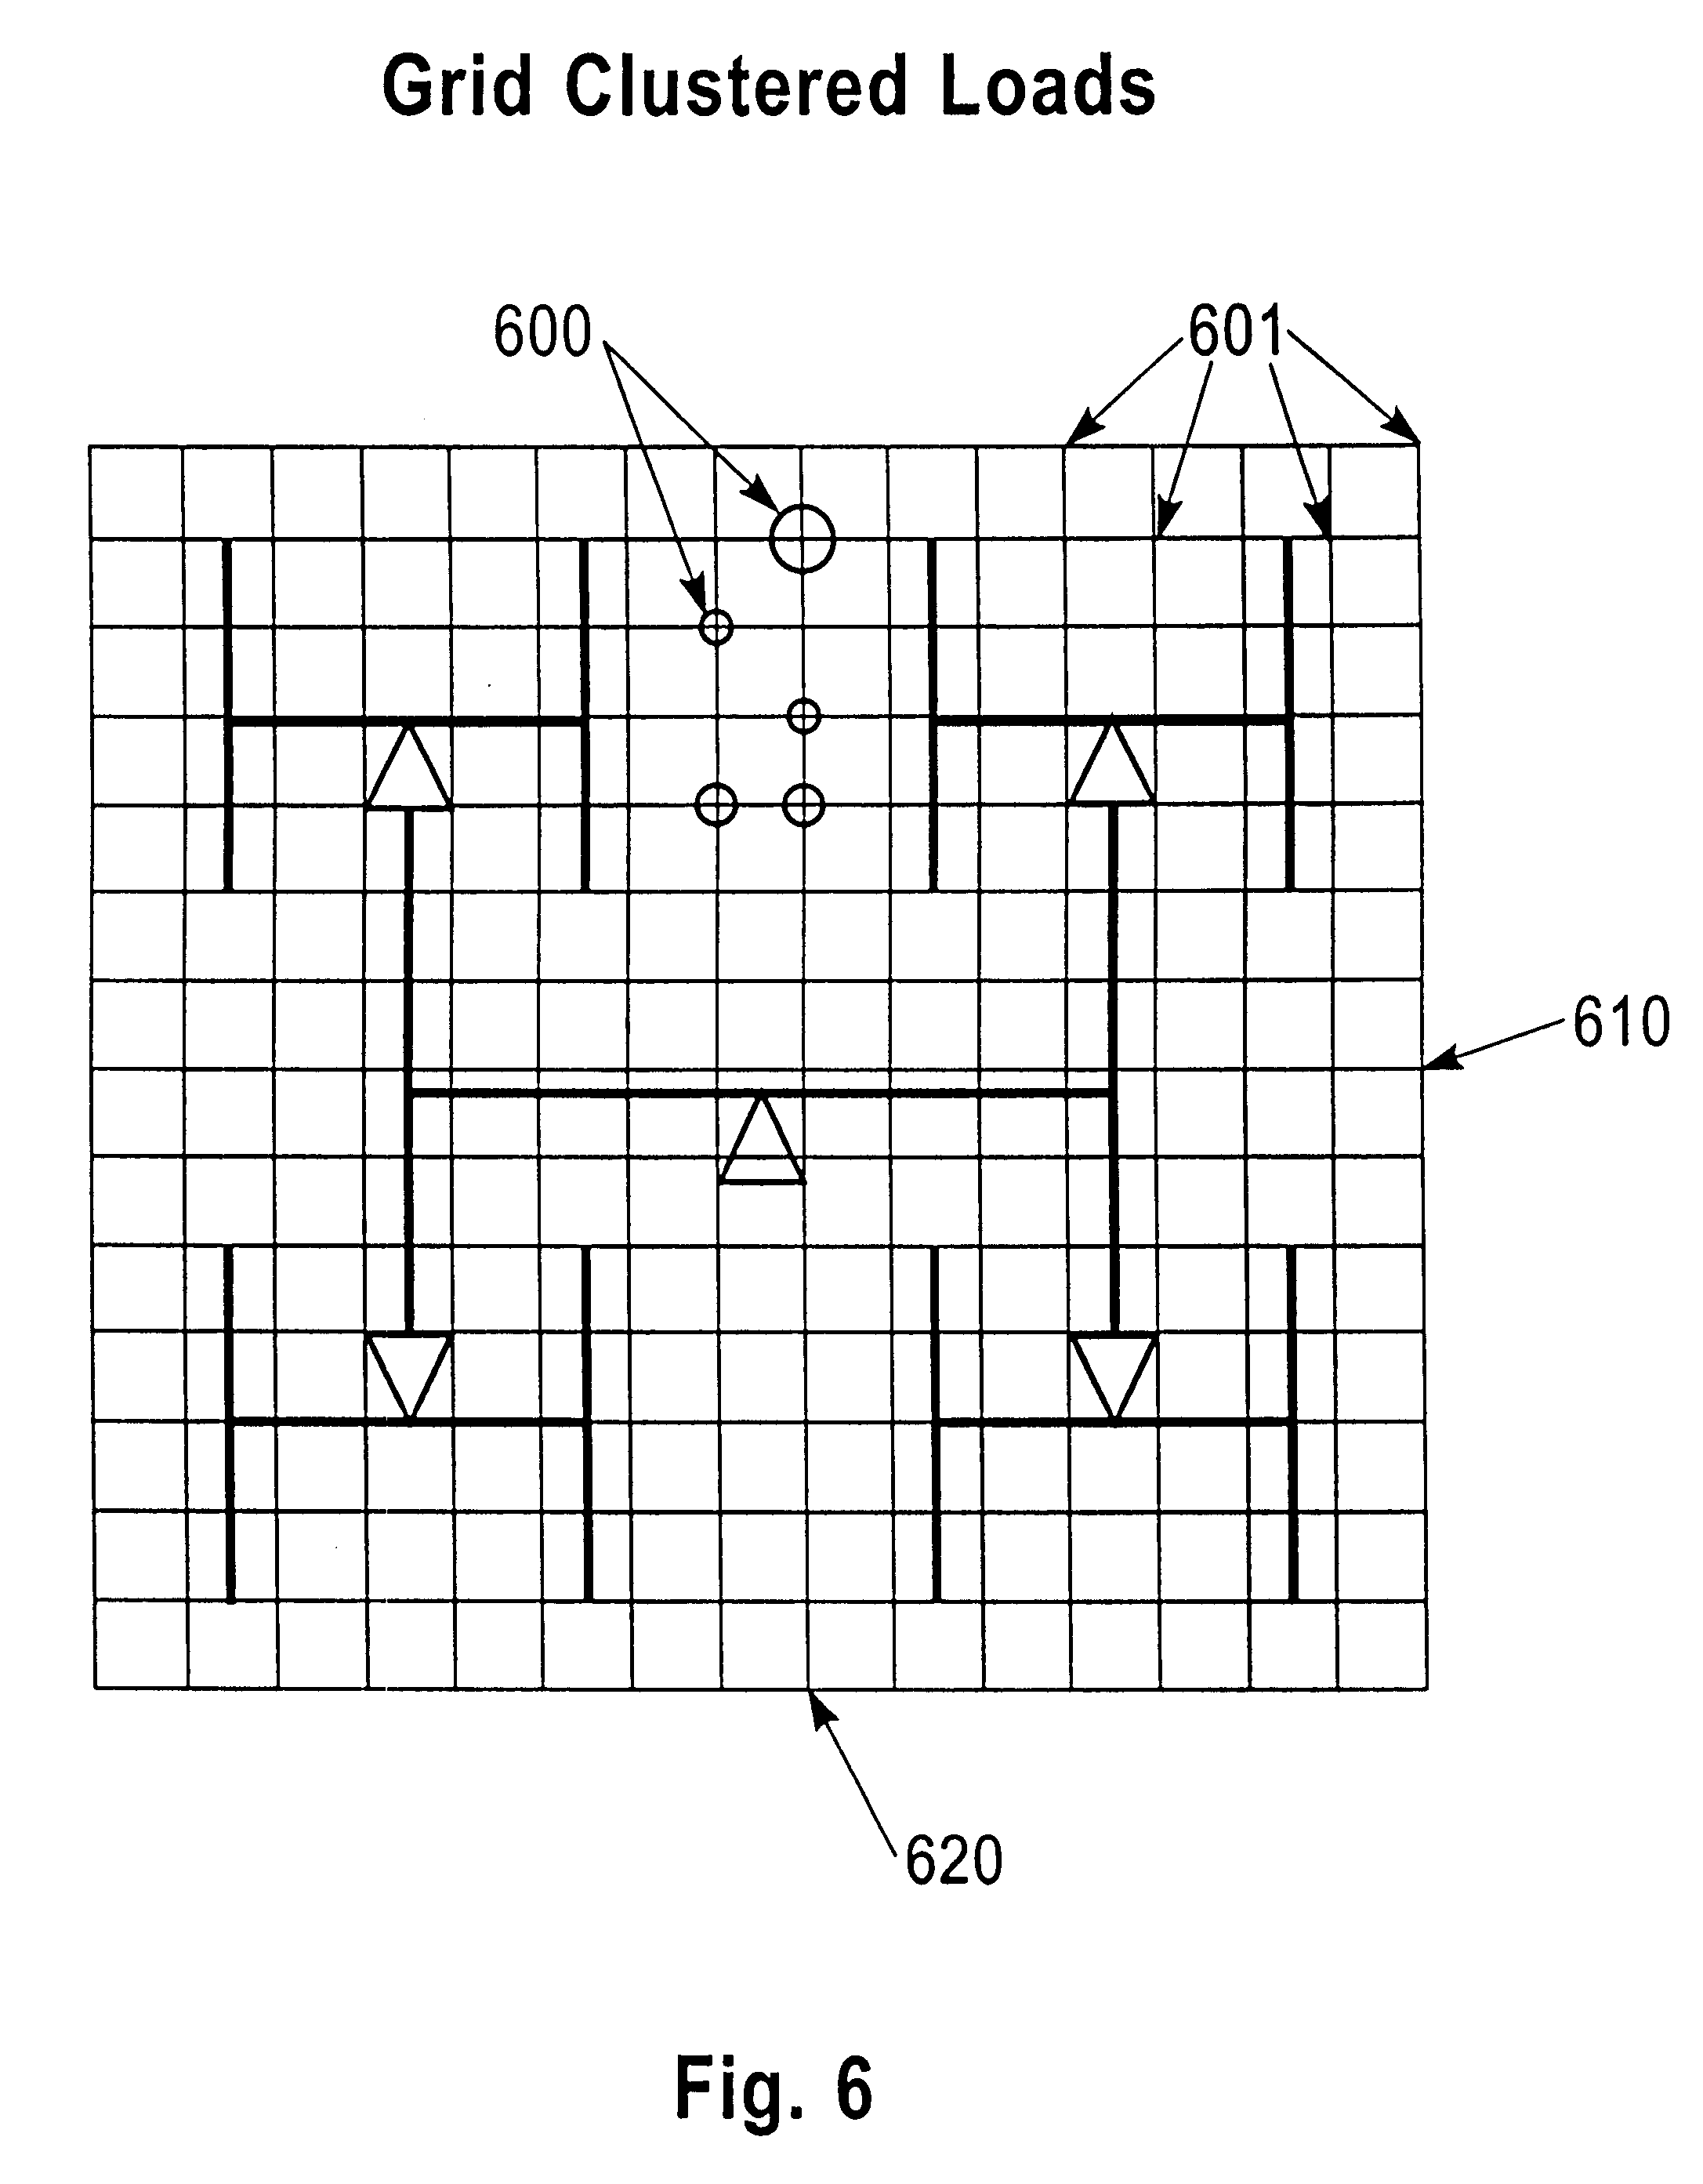 worksheet Xy Grid x y grid solving multi step equations worksheet patent us6311313 tree clock distribution network with us06311313 20011030 d00007 us6311313